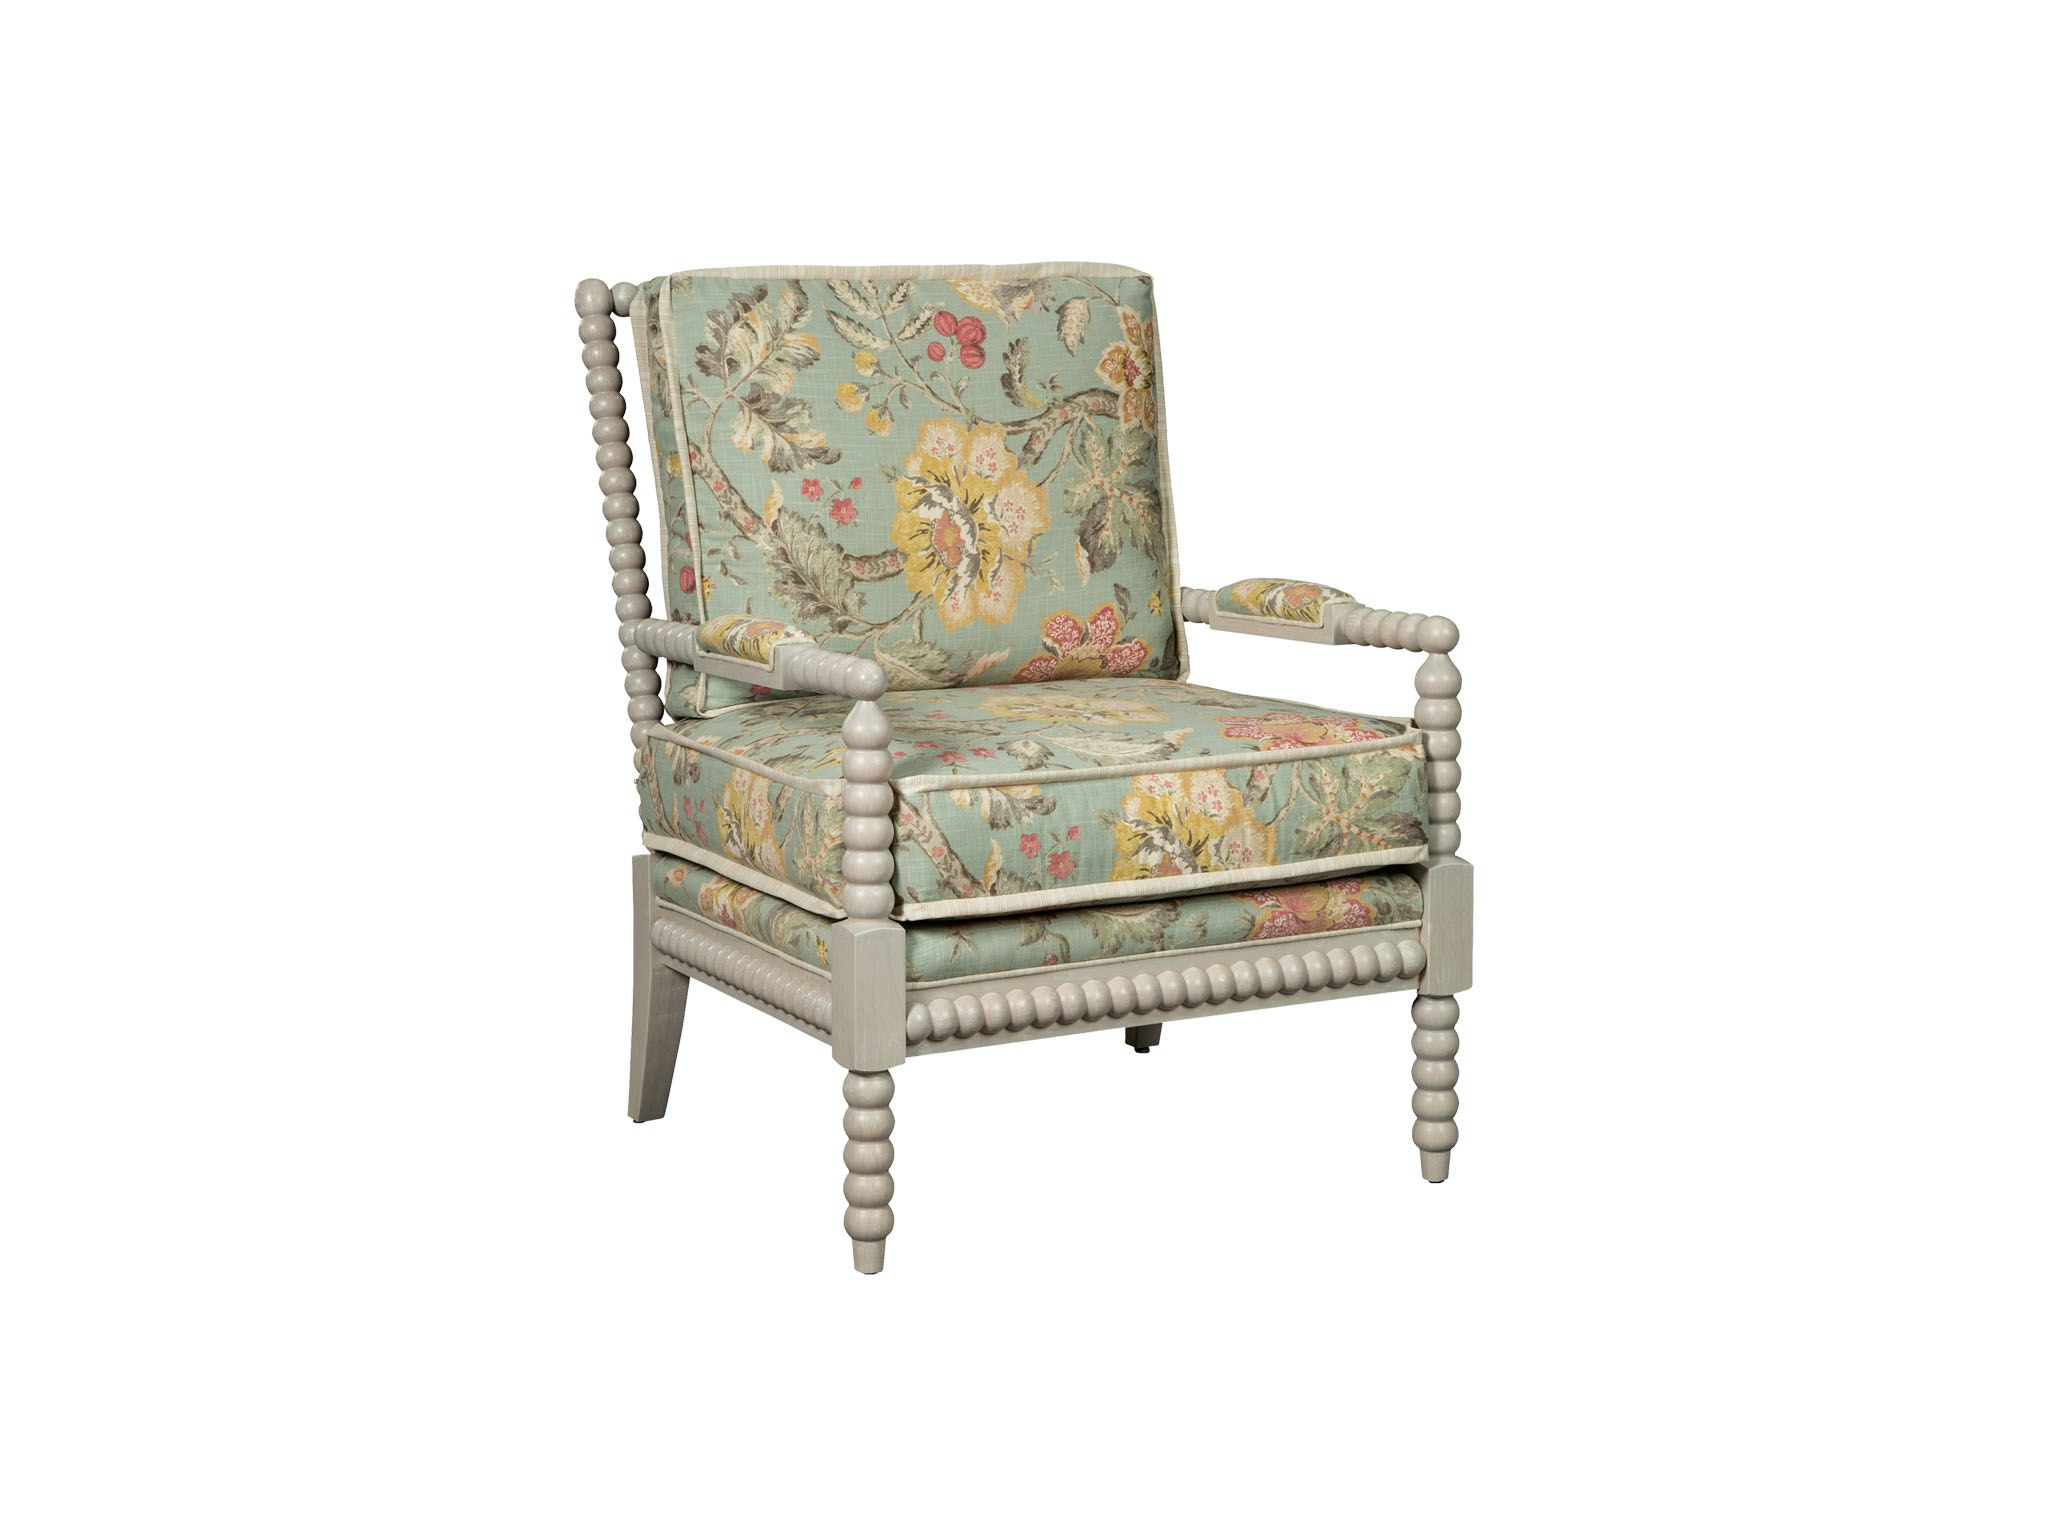 Ordinaire Paula Deen By Craftmaster Chair P074910BD